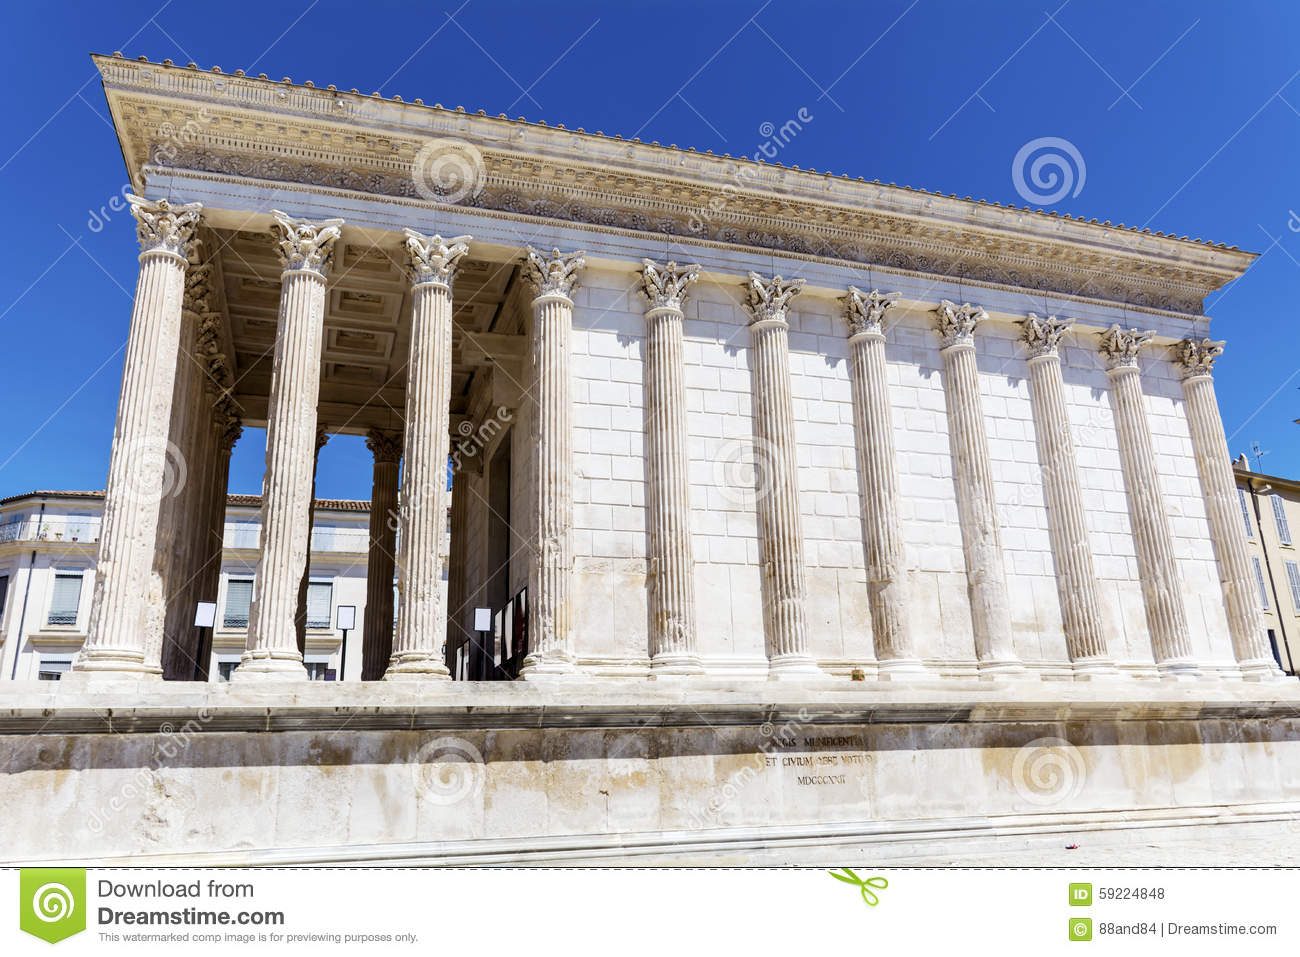 Ancient roman maison carree in nimes france stock photo - Maison carree nimes ...